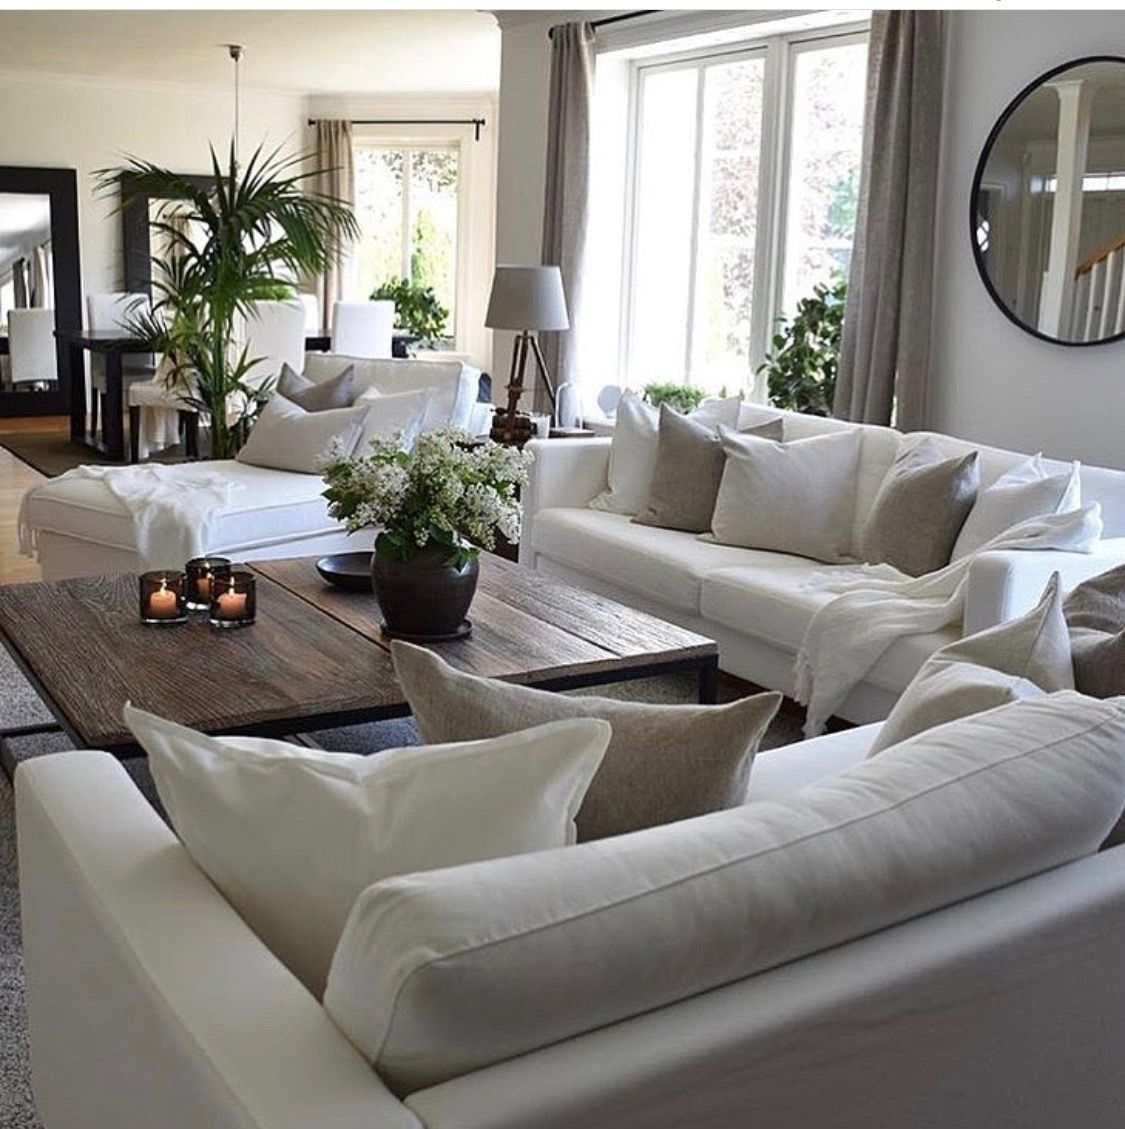 Linen sectional sofa, raw wood table, cosy, light and bright #coastallivingrooms